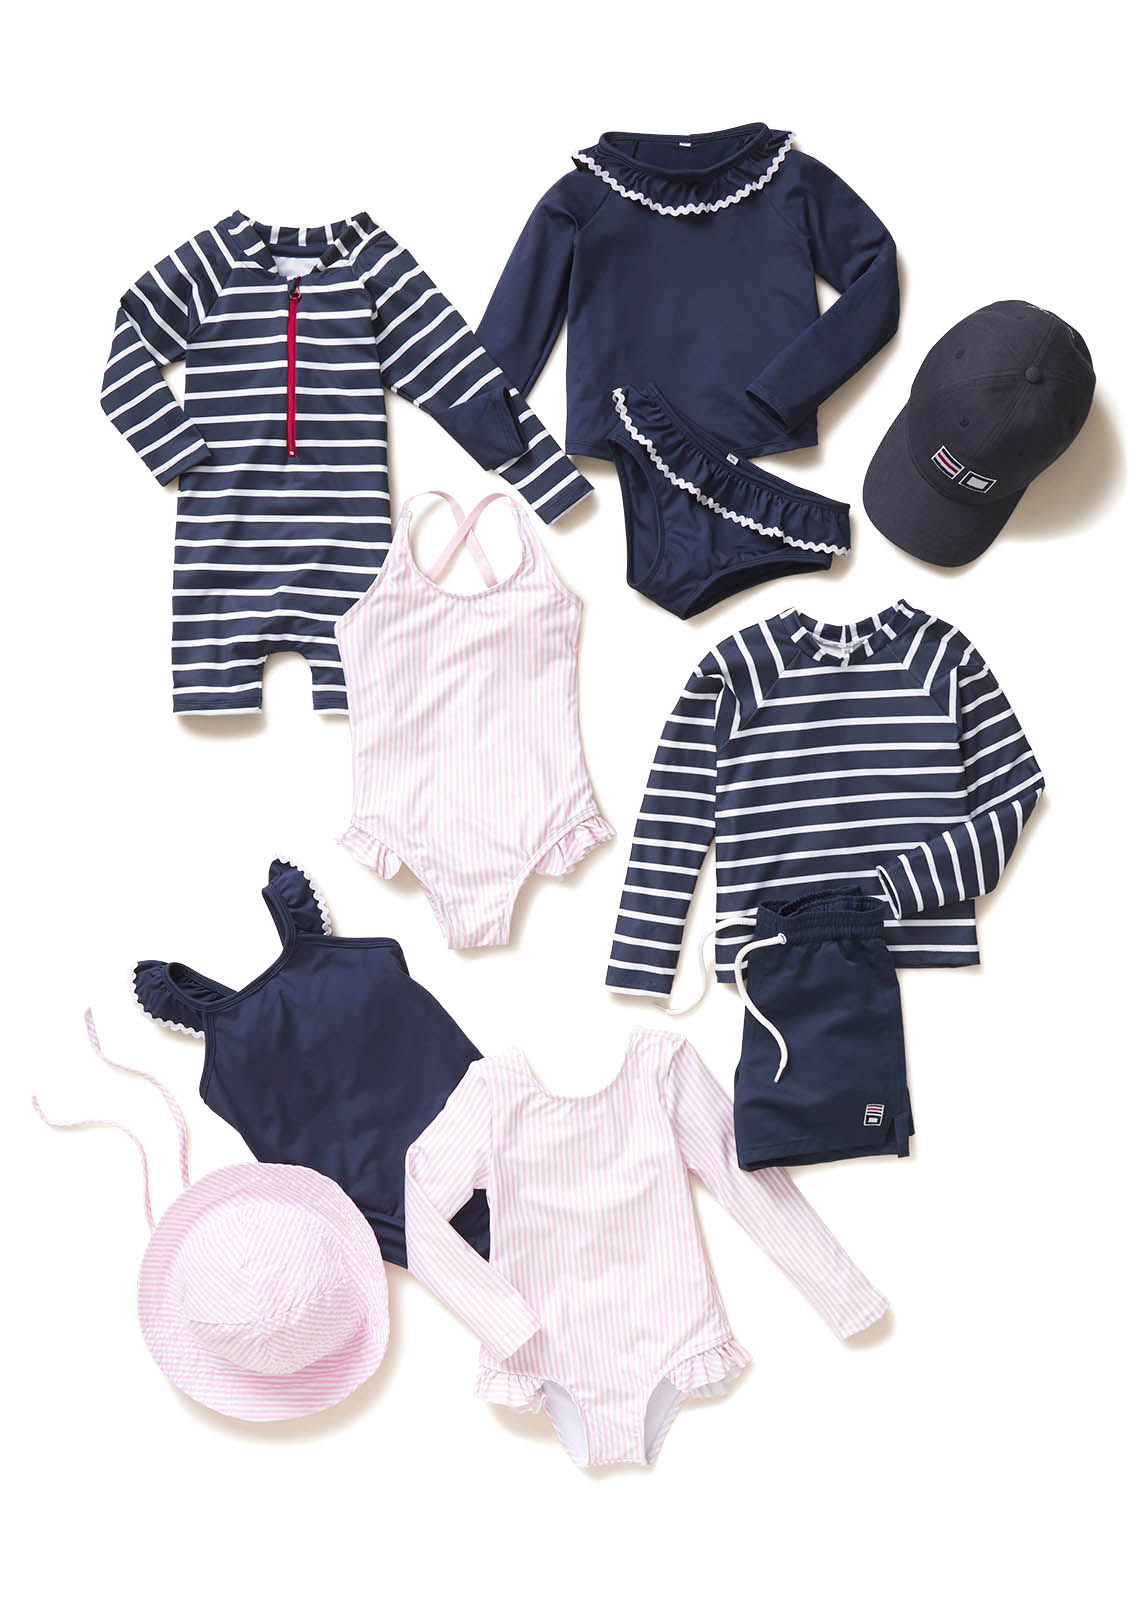 Classic-Prep-Children-Editorial-Damion-Lloyd-Photography-Laydown-Commercial-Apparel-Product-Clothing-Art-Directed-Los-Angeles-Orange-County-pink-stripes